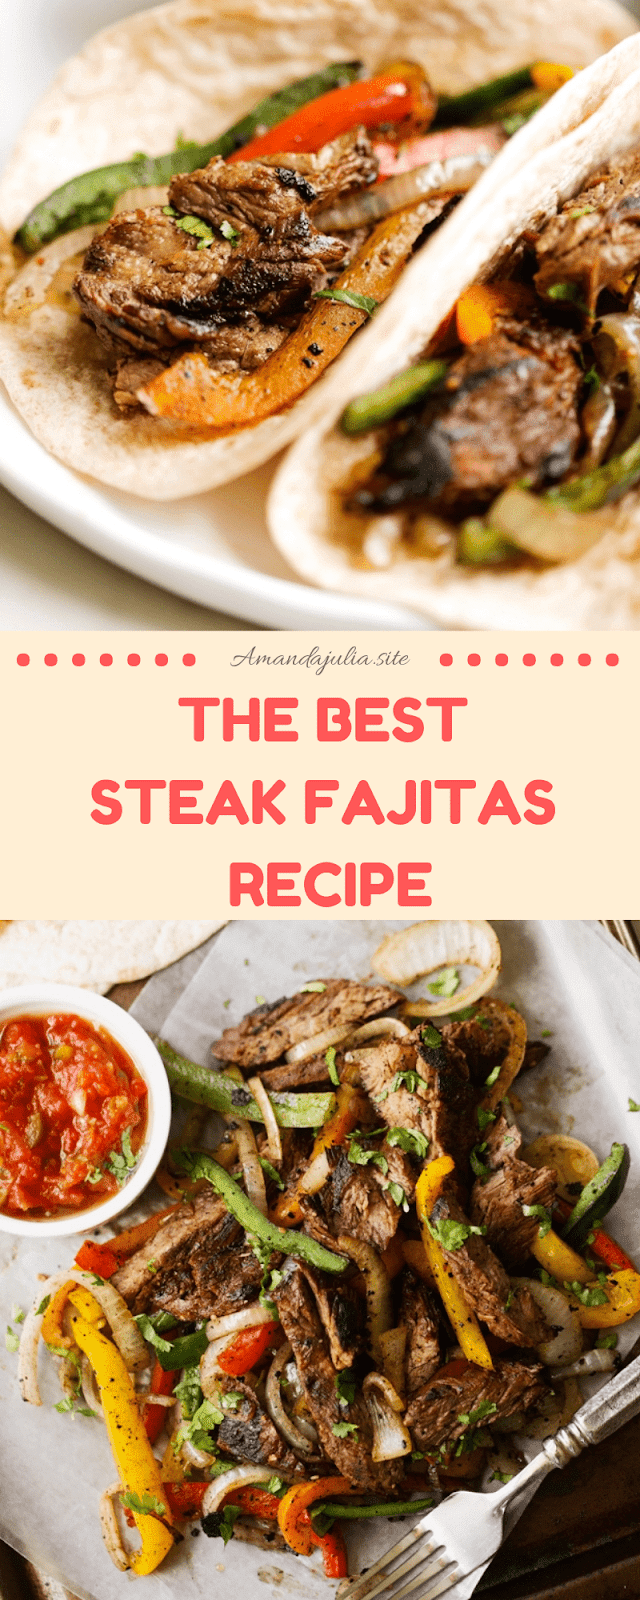 THE BEST Steak Fajitas Recipe #beeffajitarecipe